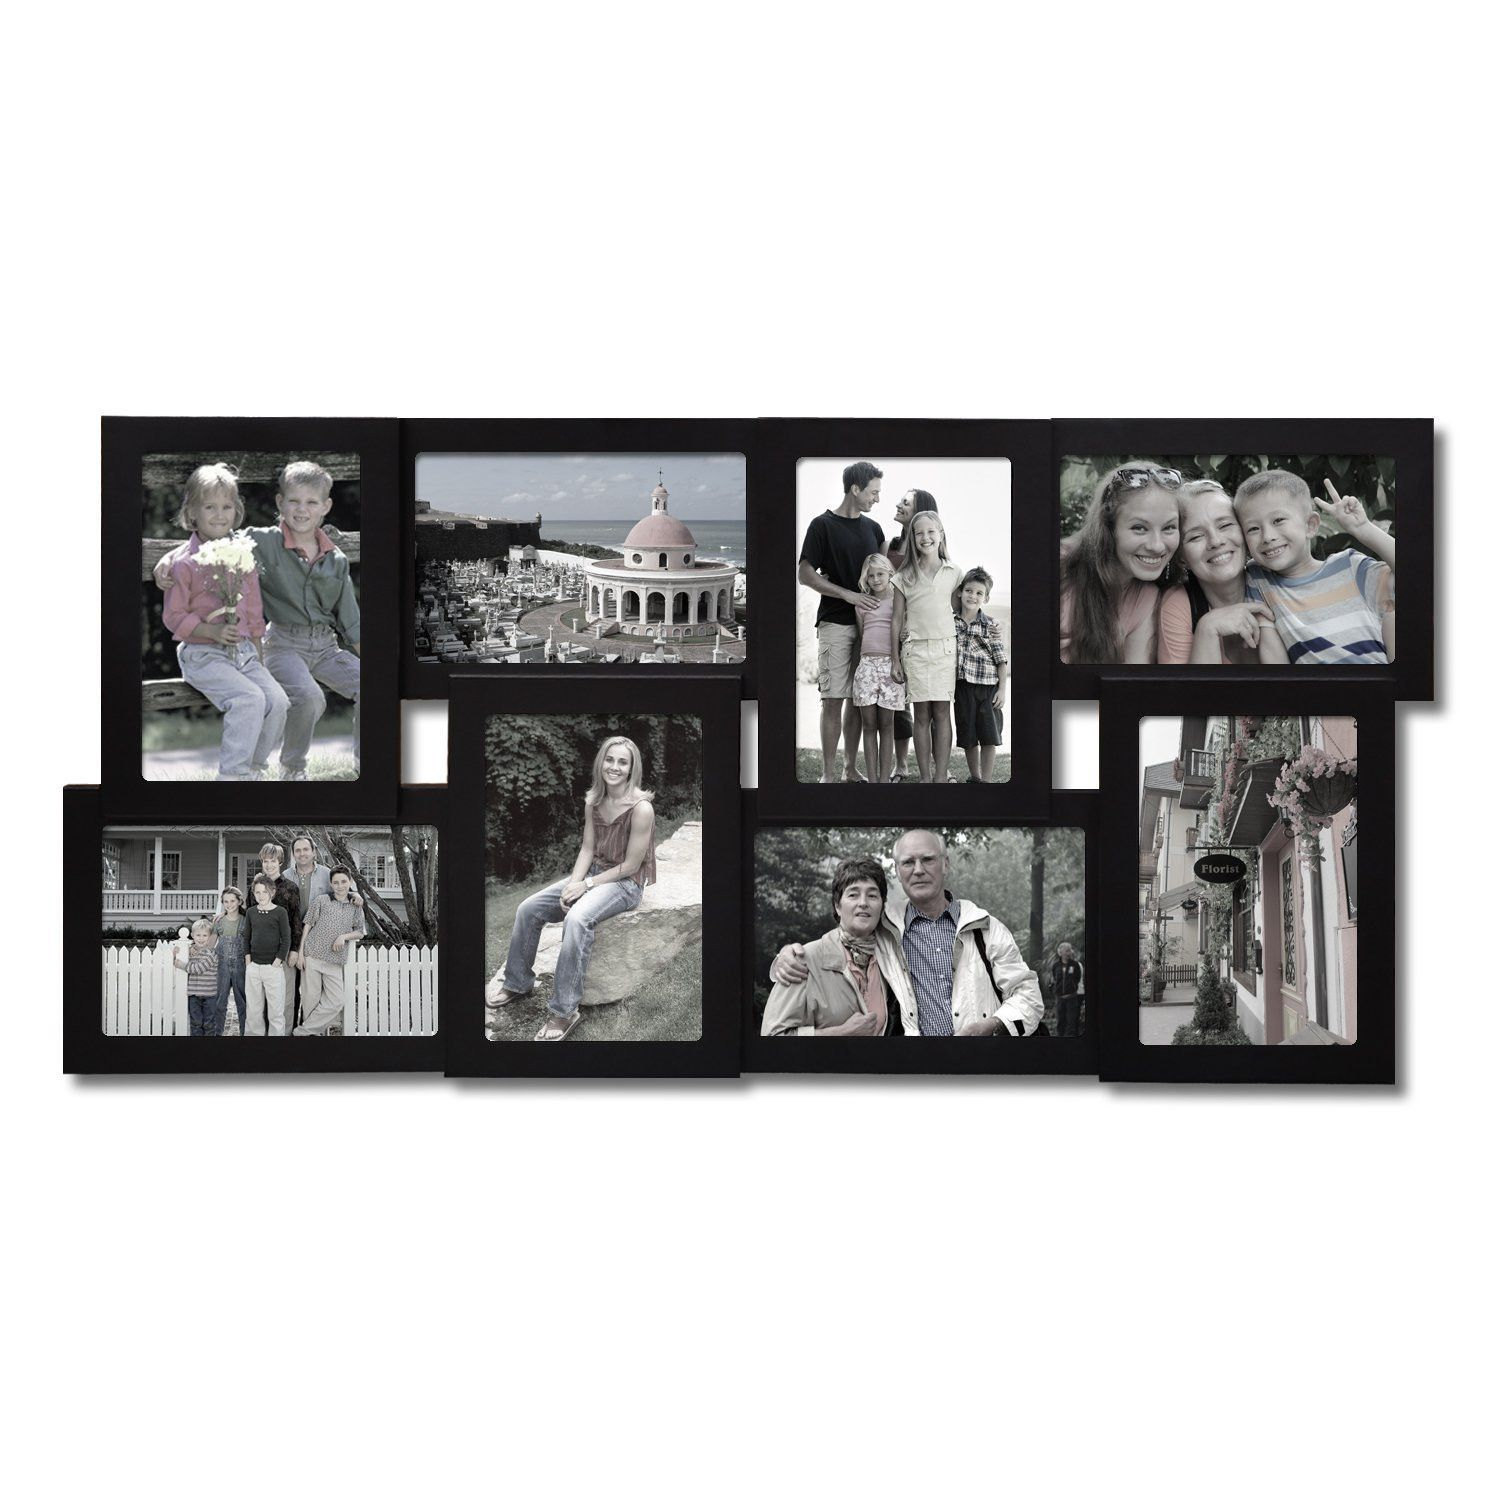 Decorative Black Wood Wall Hanging Collage Picture Photo Frame ...